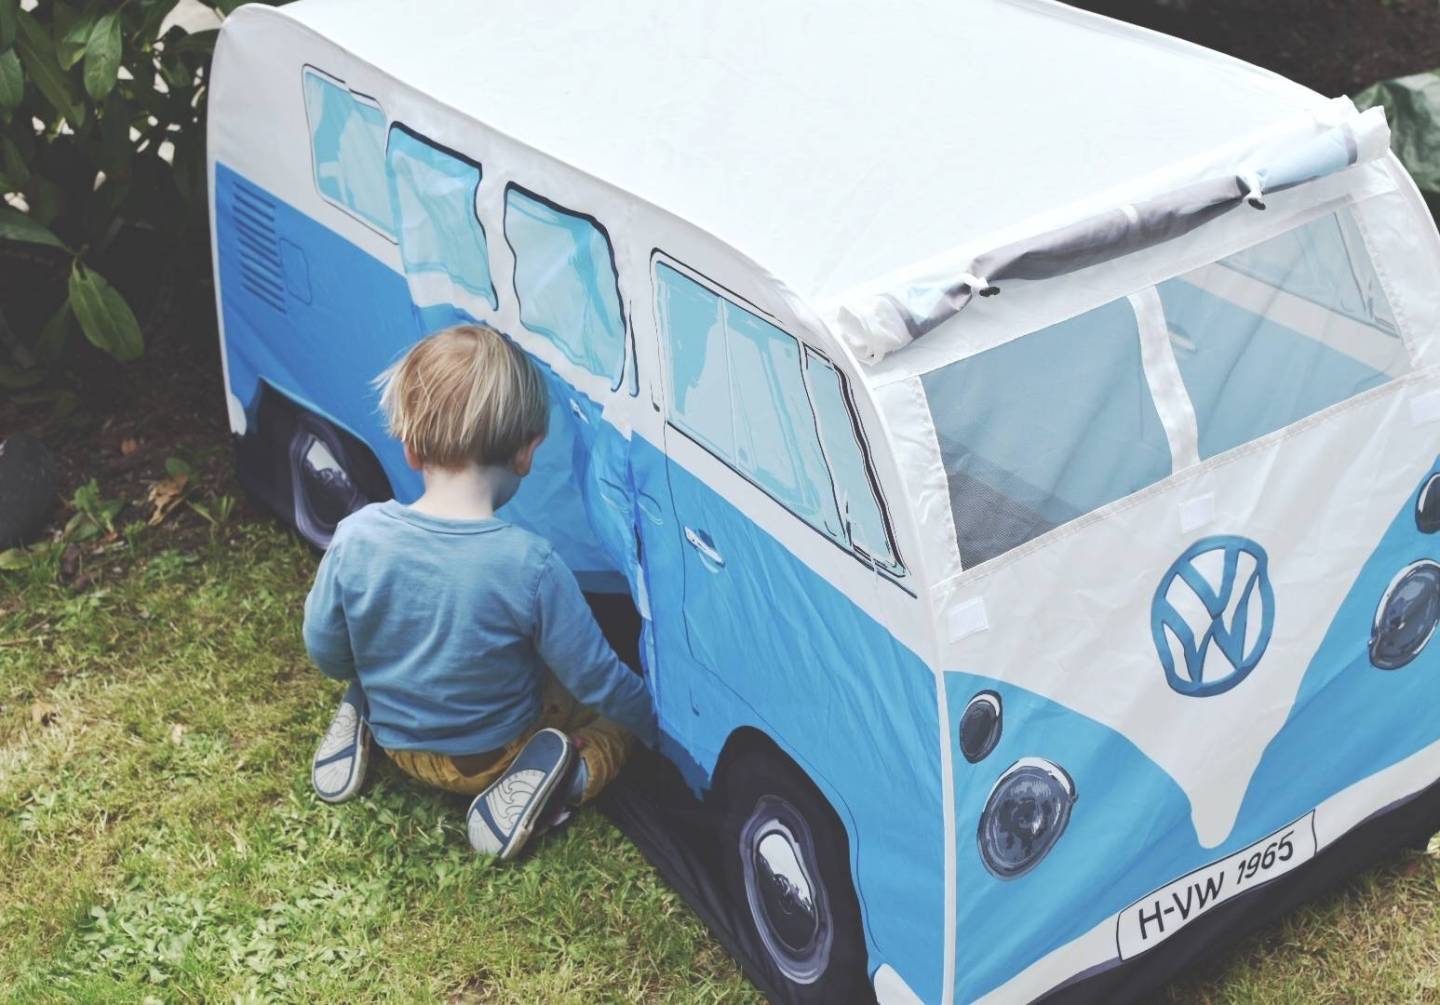 liven up your garden and keep your children safe in the funkiest of ways with a VW campervan play tent from Planet Camping